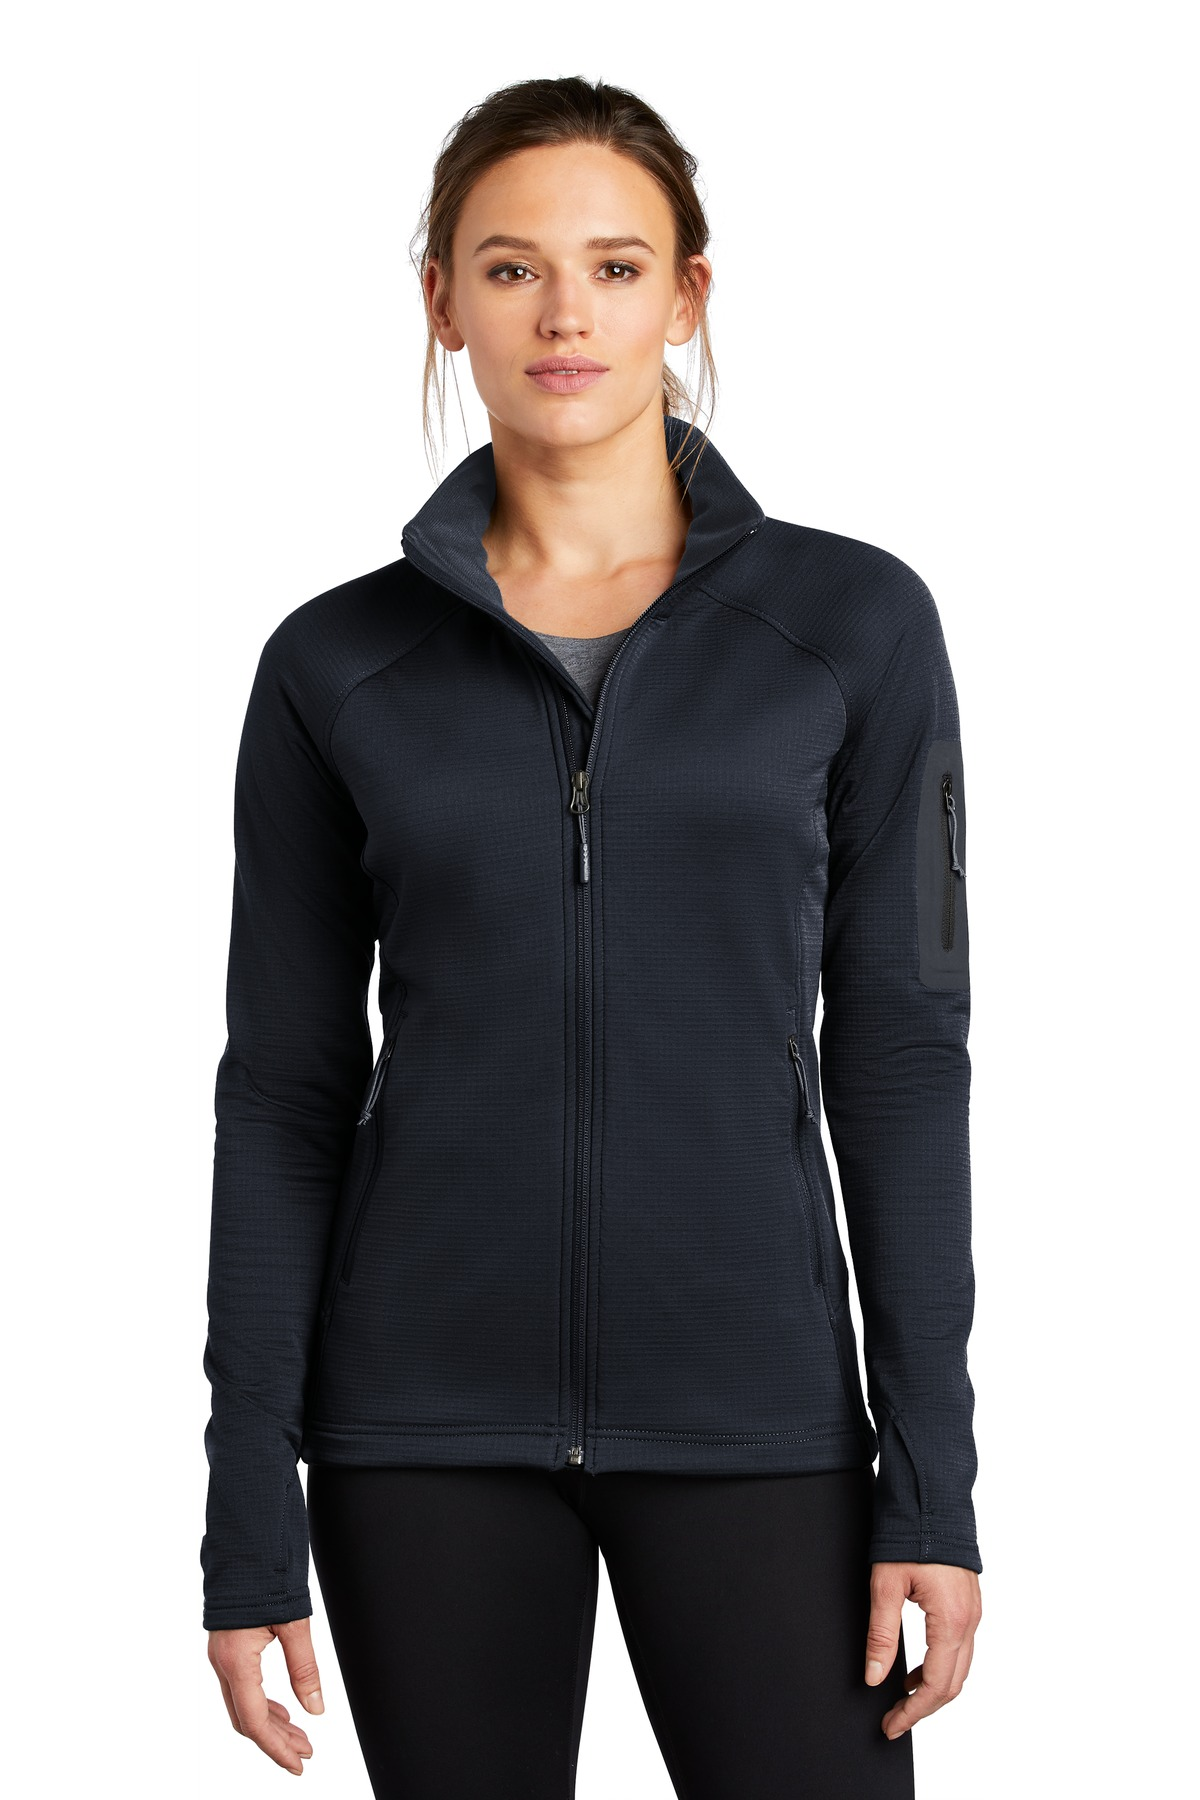 The North Face  ®  Ladies Mountain Peaks Full-Zip Fleece Jacket NF0A47FE - Urban Navy